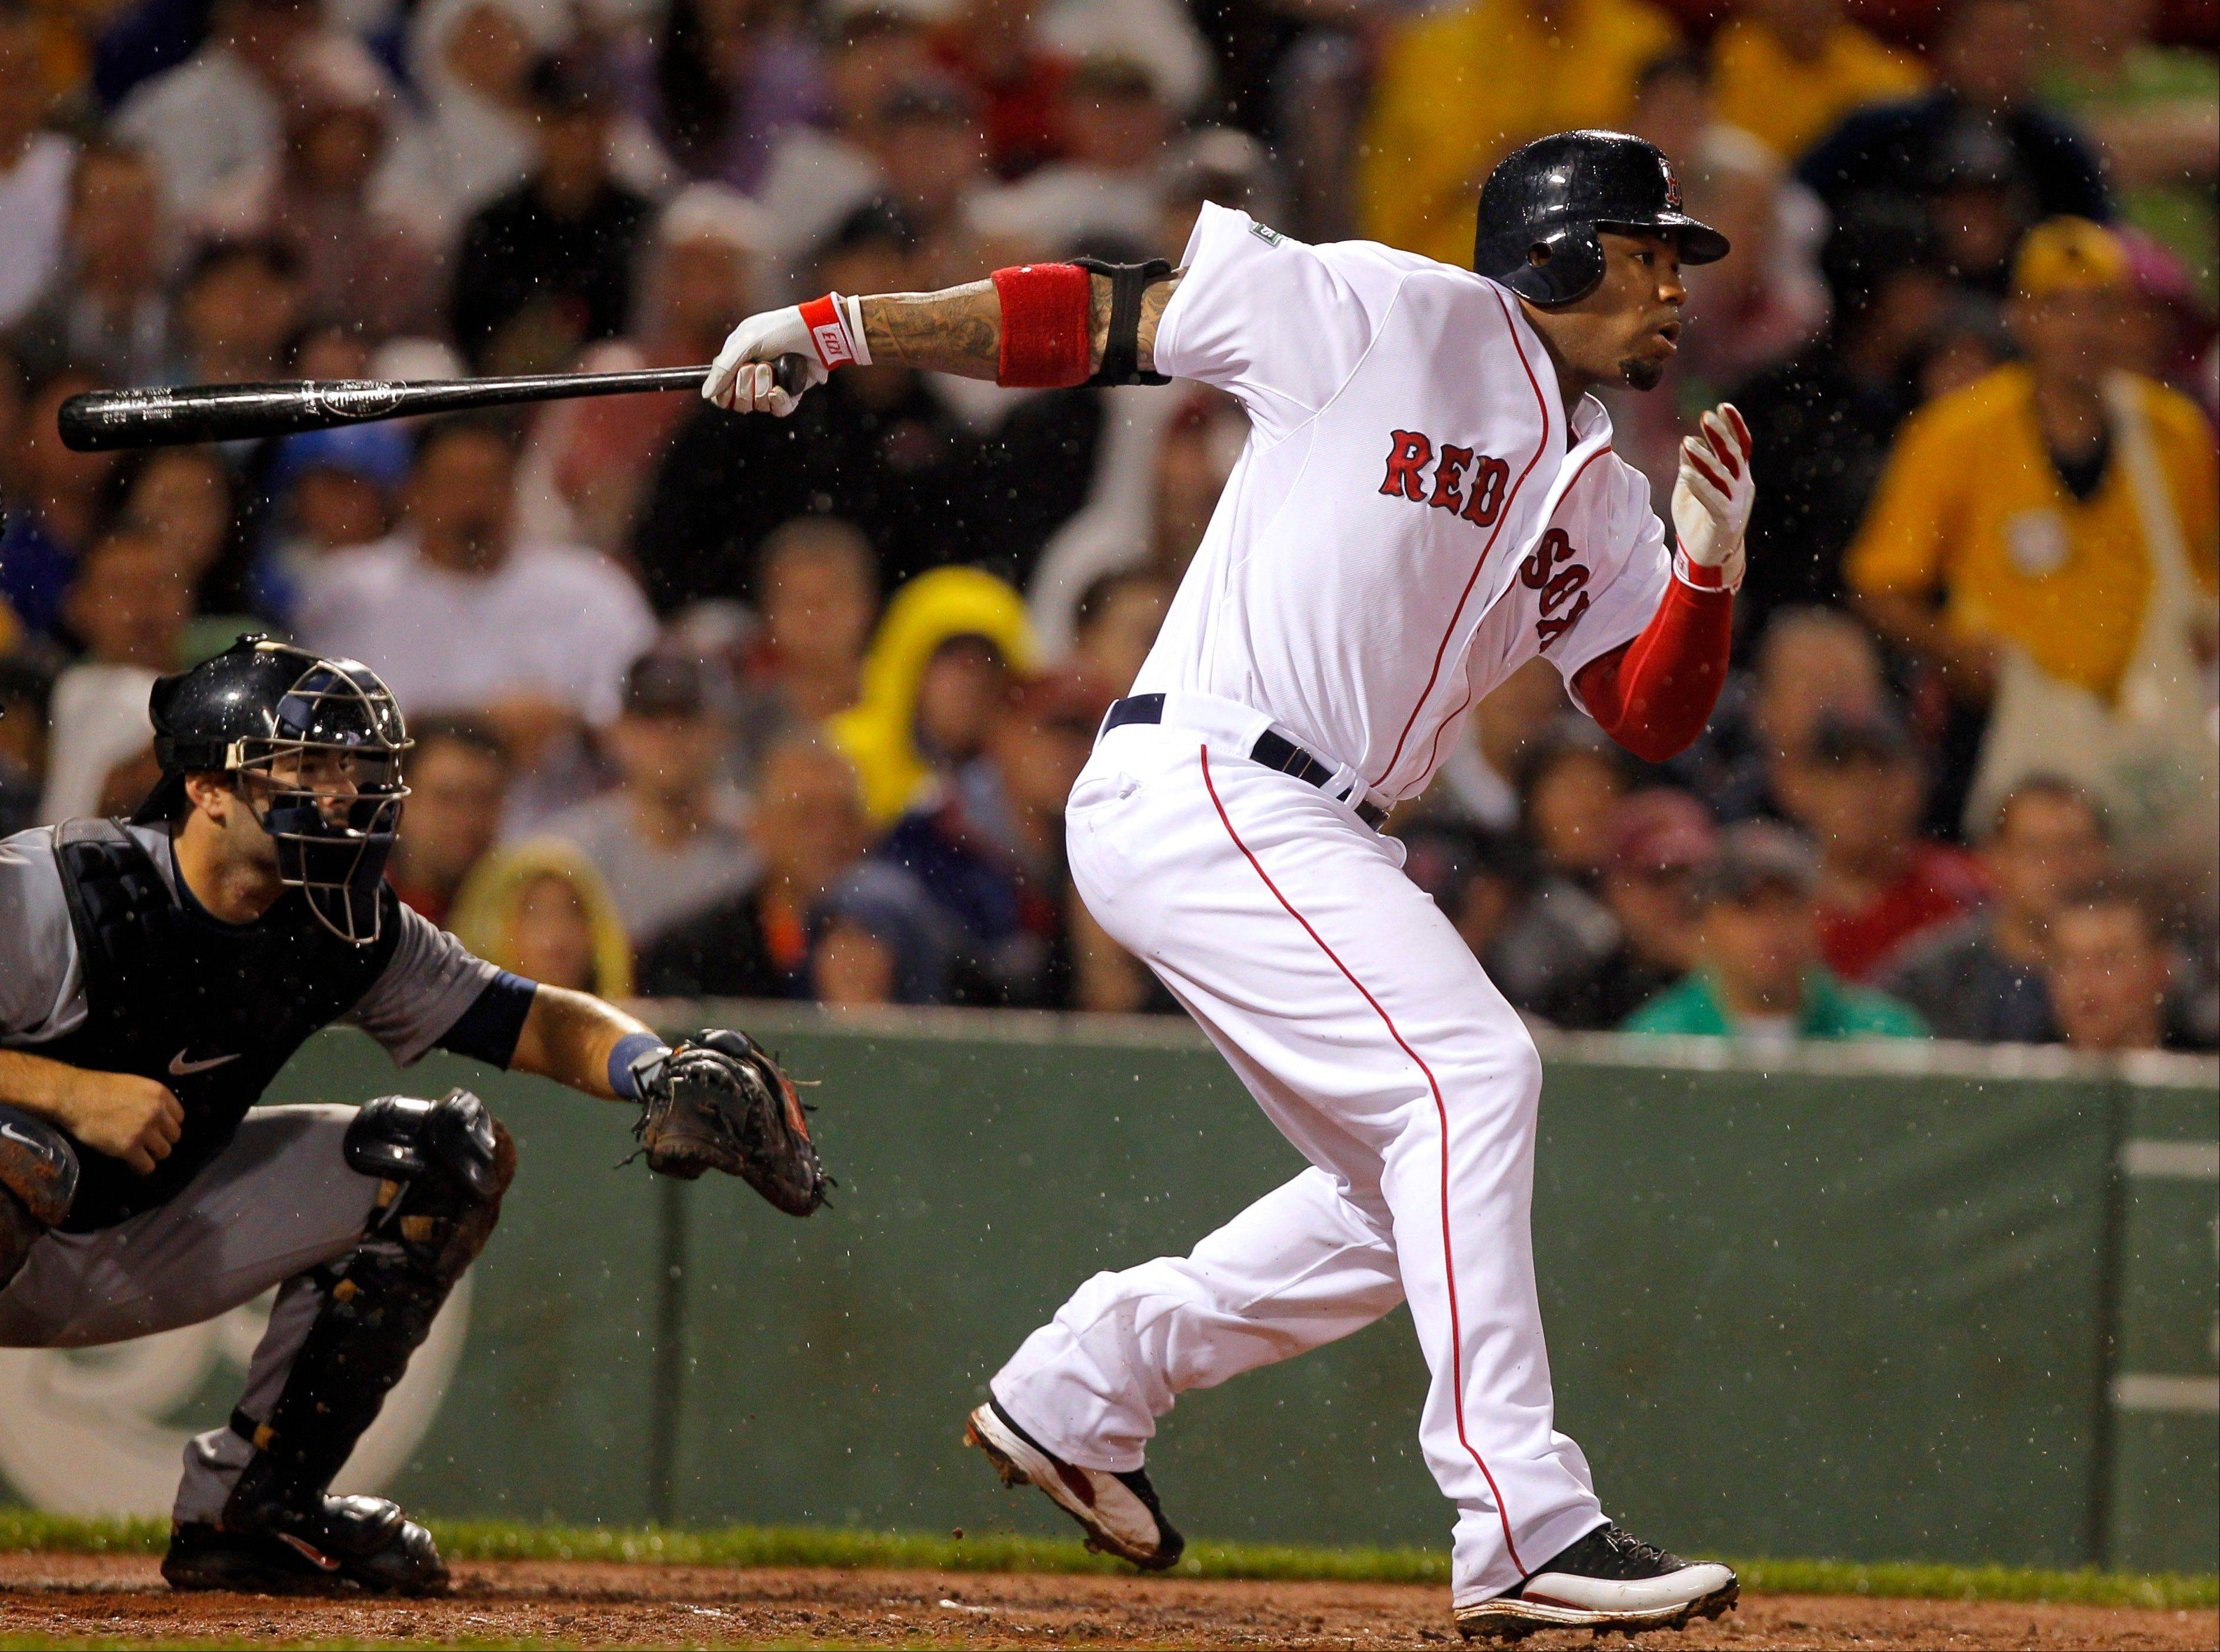 Boston's Carl Crawford hits an RBI single off Detroit's Justin Verlander in the fourth inning Tuesday at Fenway Park.